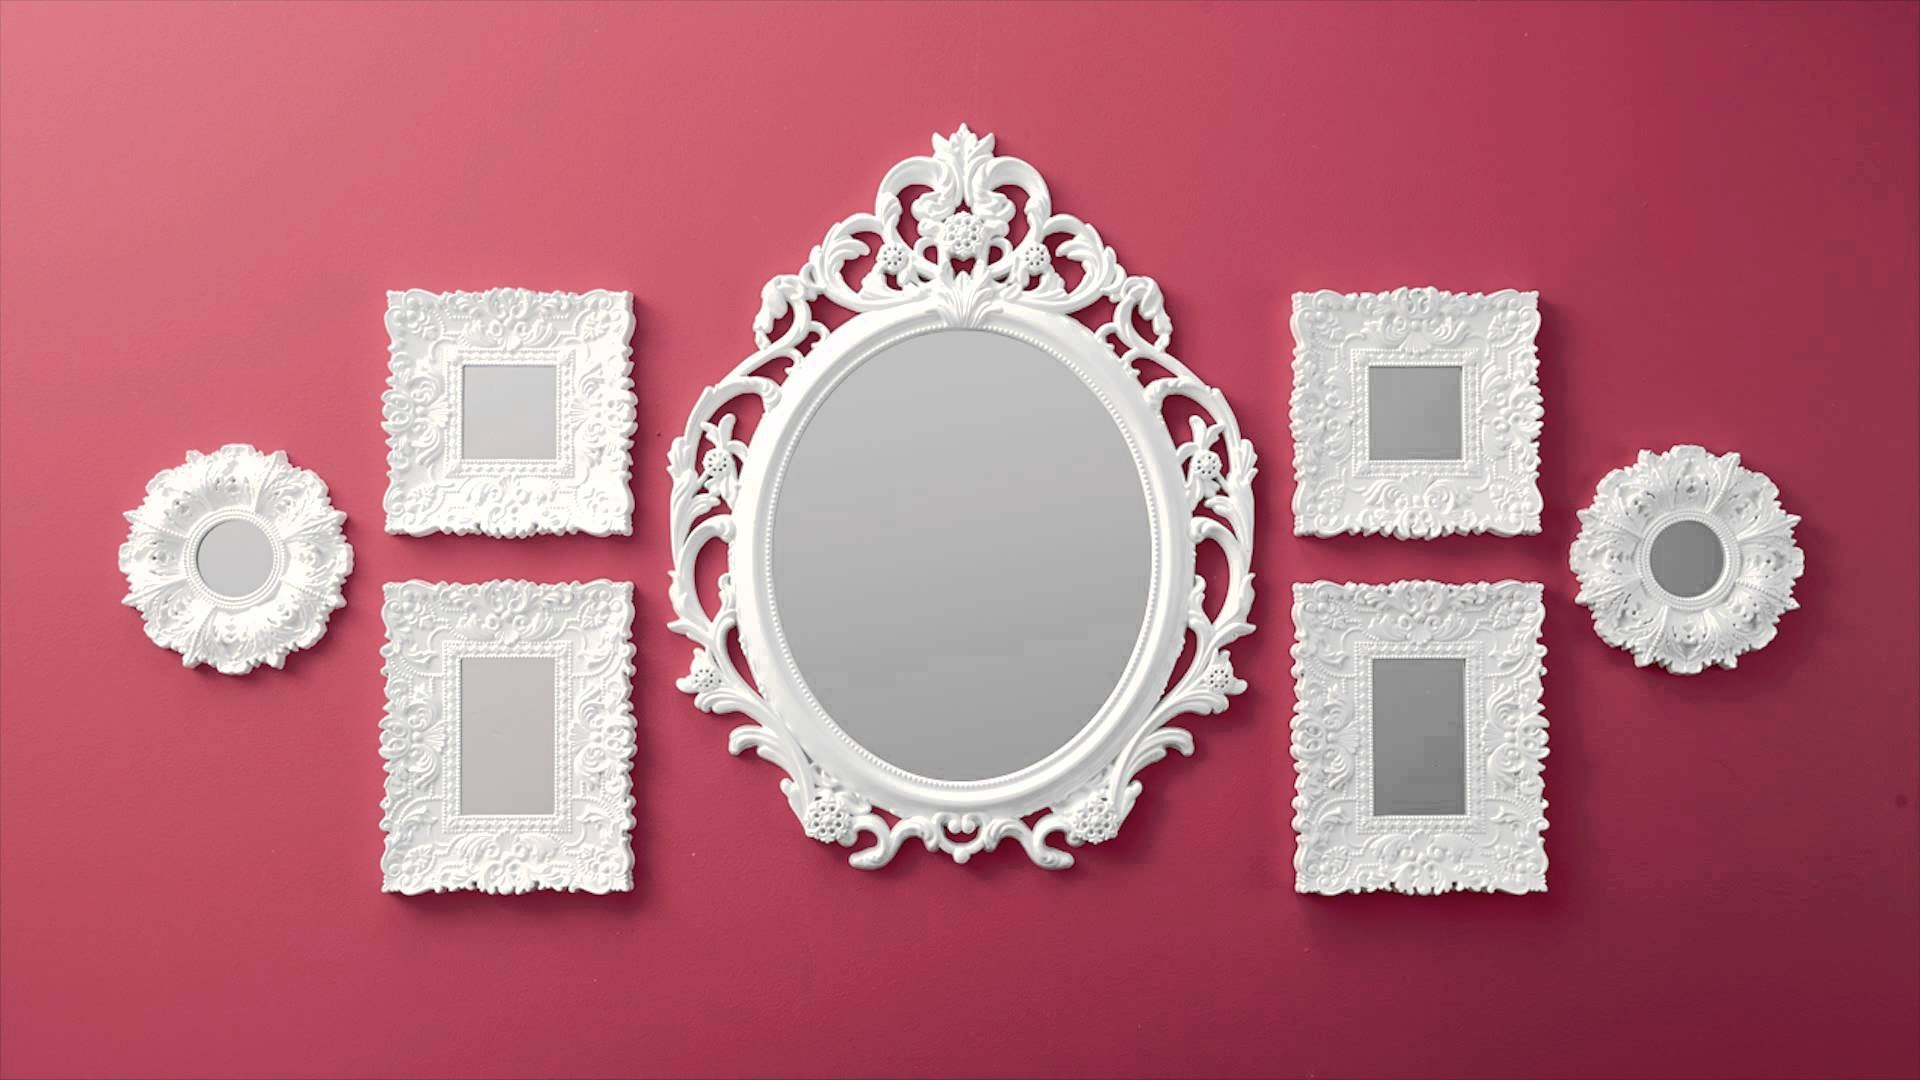 Dancing Mirrors From Better Homes And Gardens At Walmart! - Youtube regarding White Baroque Wall Mirrors (Image 12 of 25)